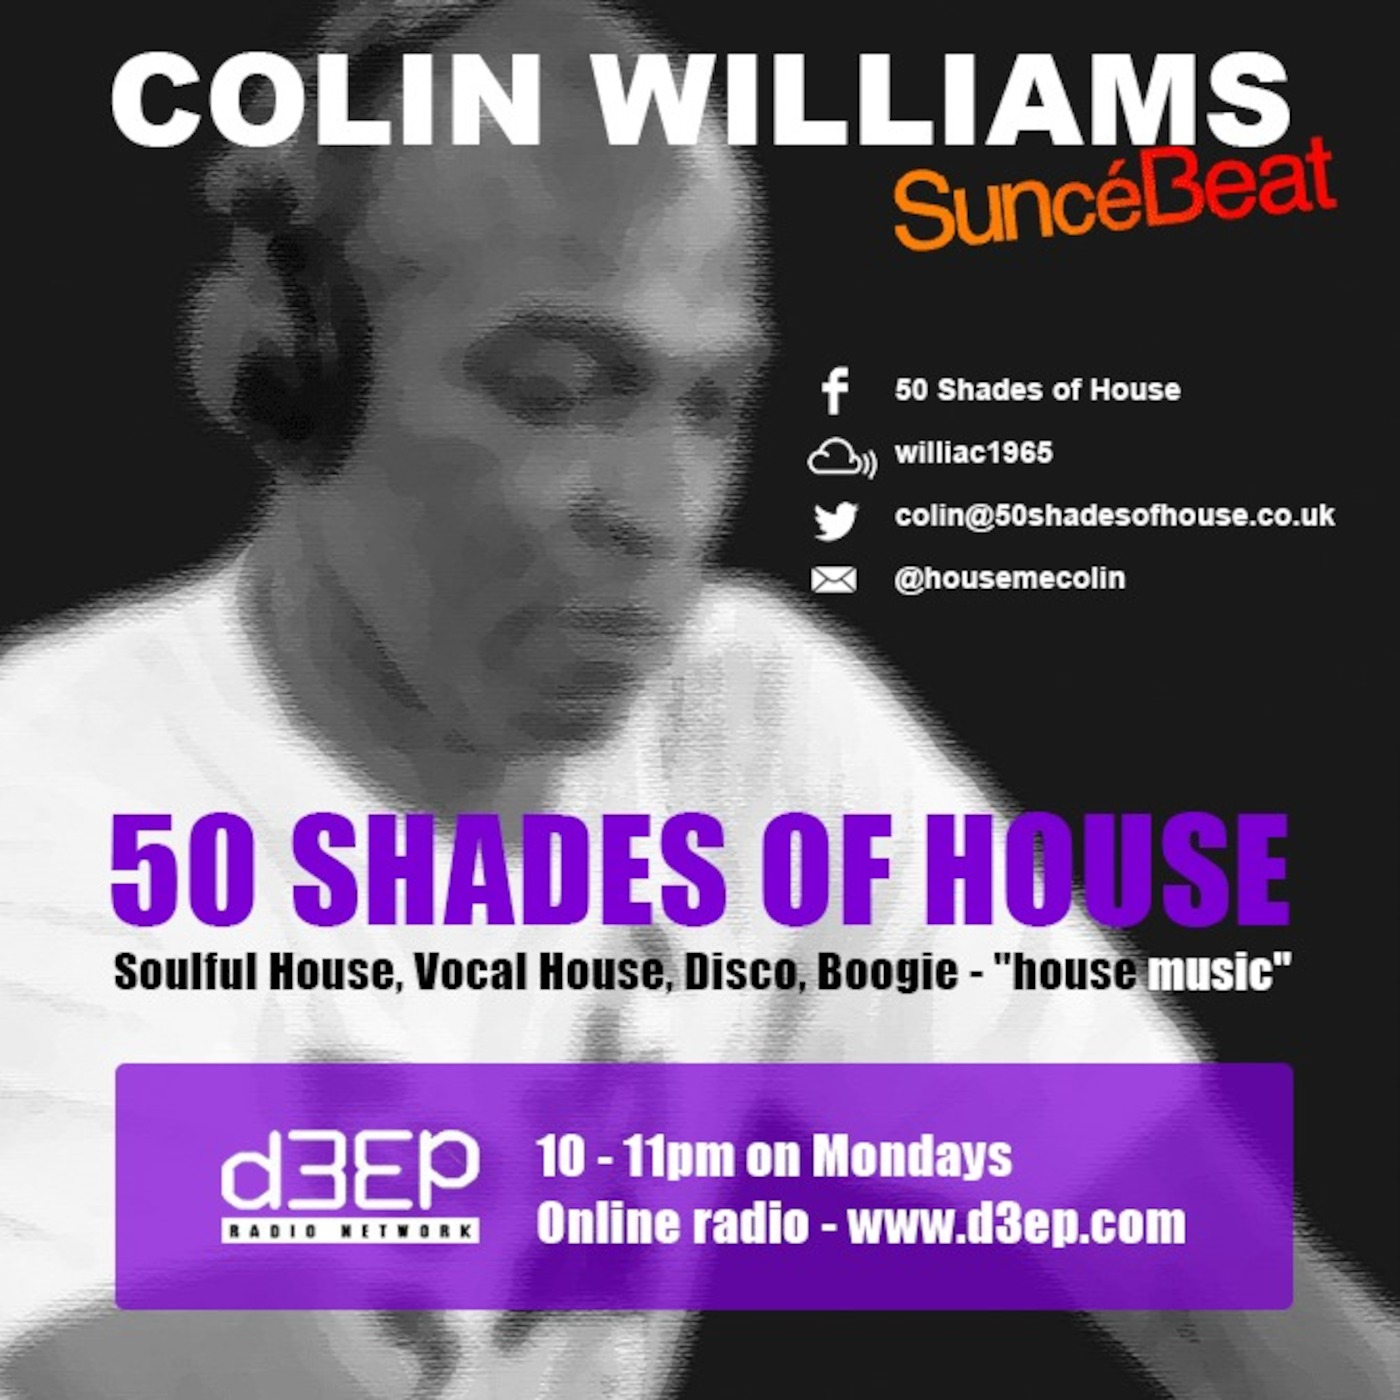 141116 Colin W 50 Shades Of Soulfiul House On Www d3ep com